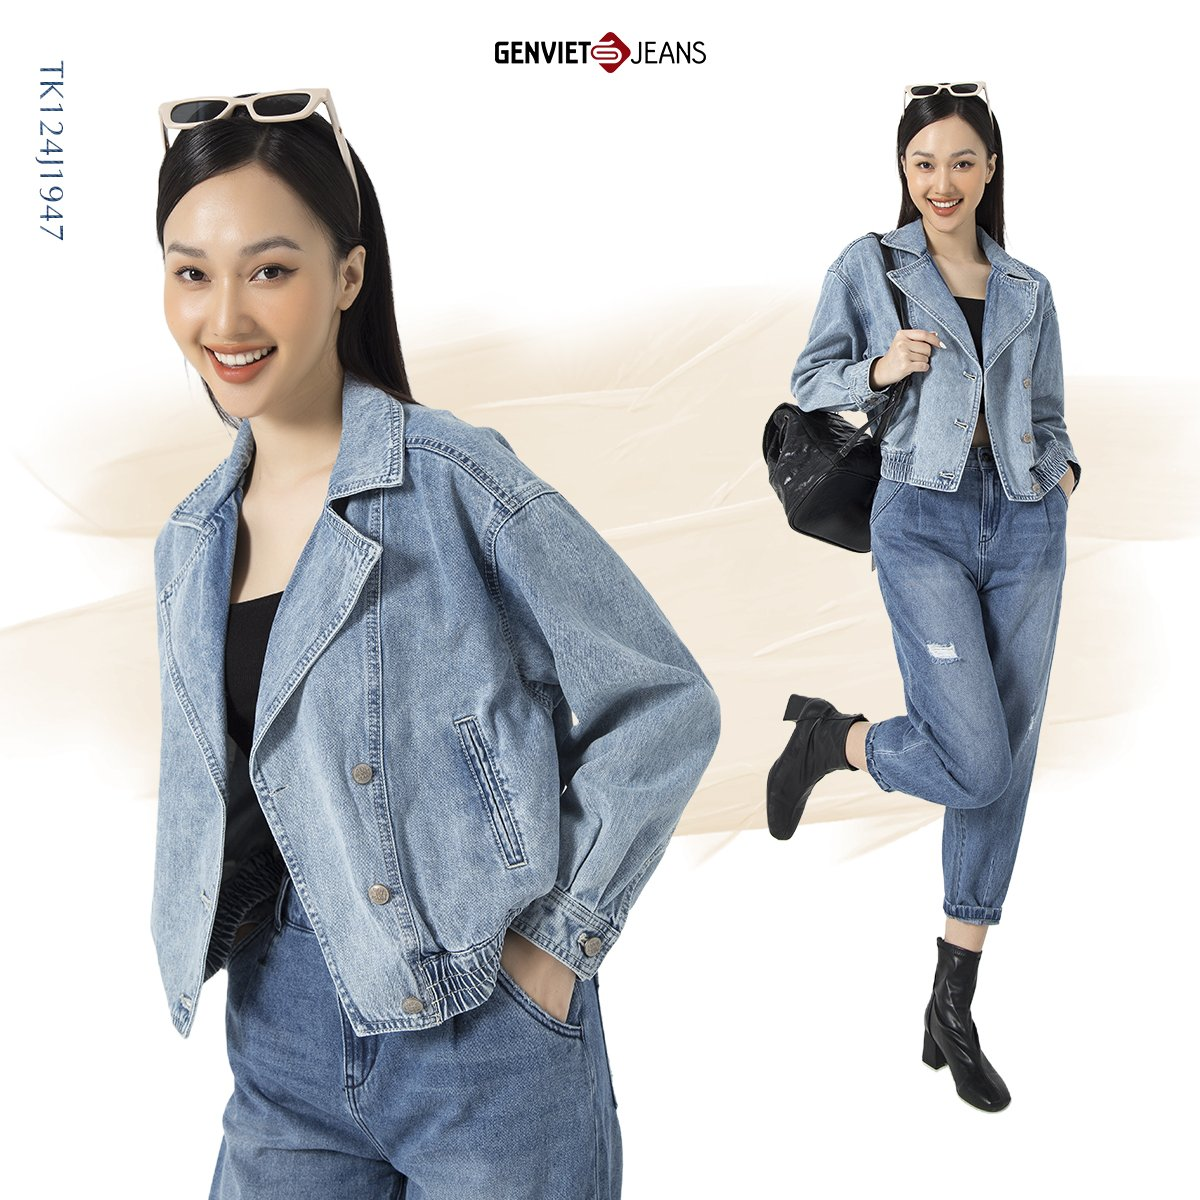 𝐍𝐄𝐖 𝐀𝐑𝐑𝐈𝐕𝐀𝐋𝐒 - THU ĐÔNG 2021 | JEANS IN CASUALS